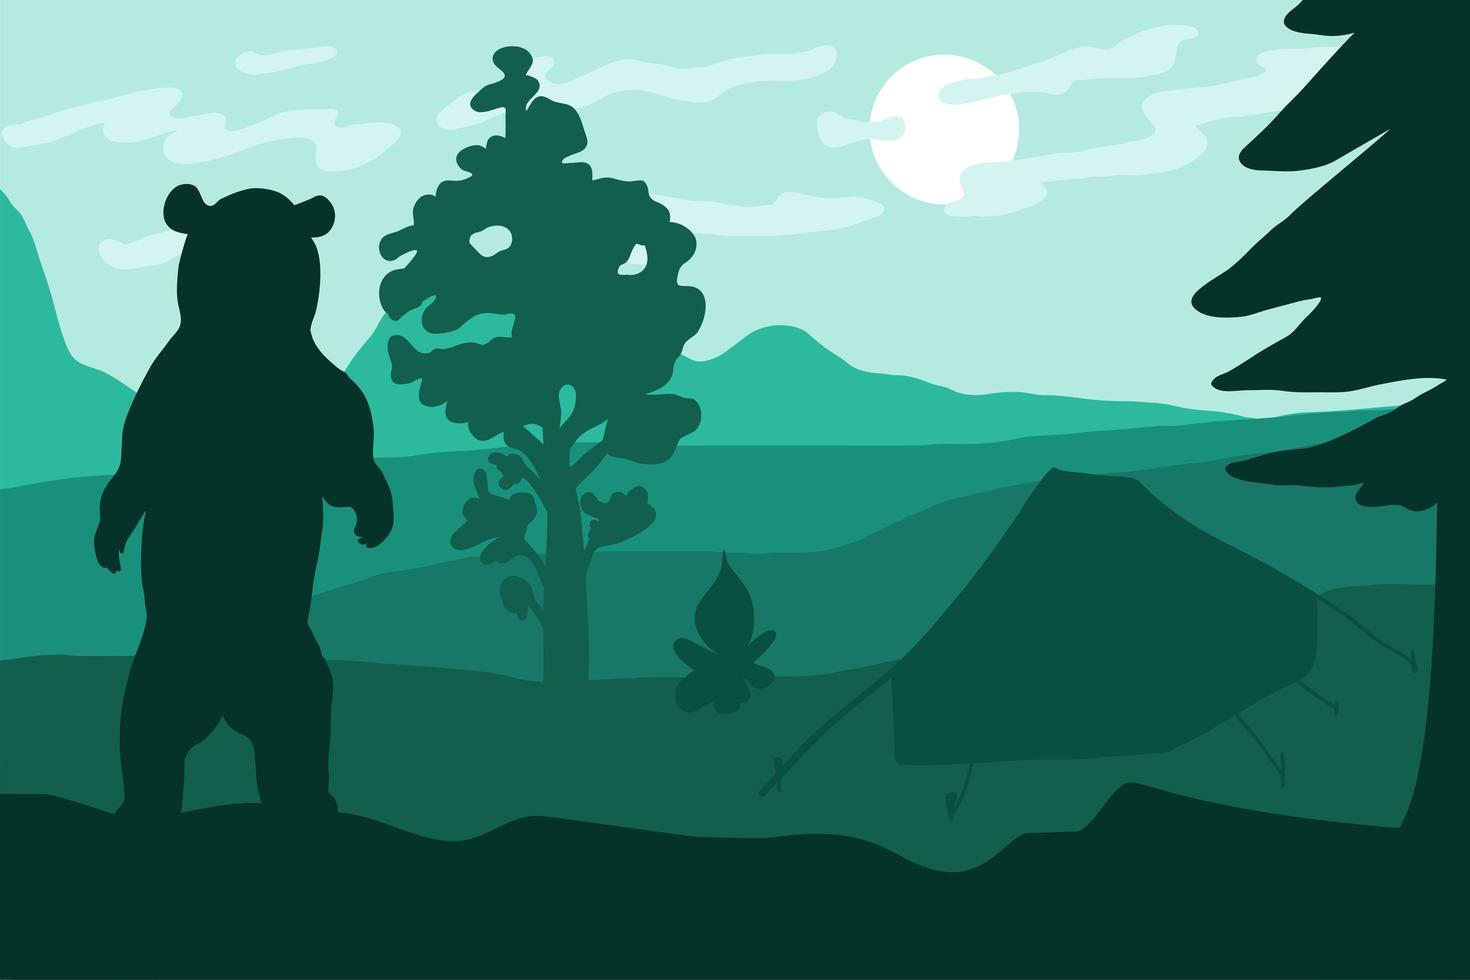 Standing wild bear in camping near forest and mountains vector